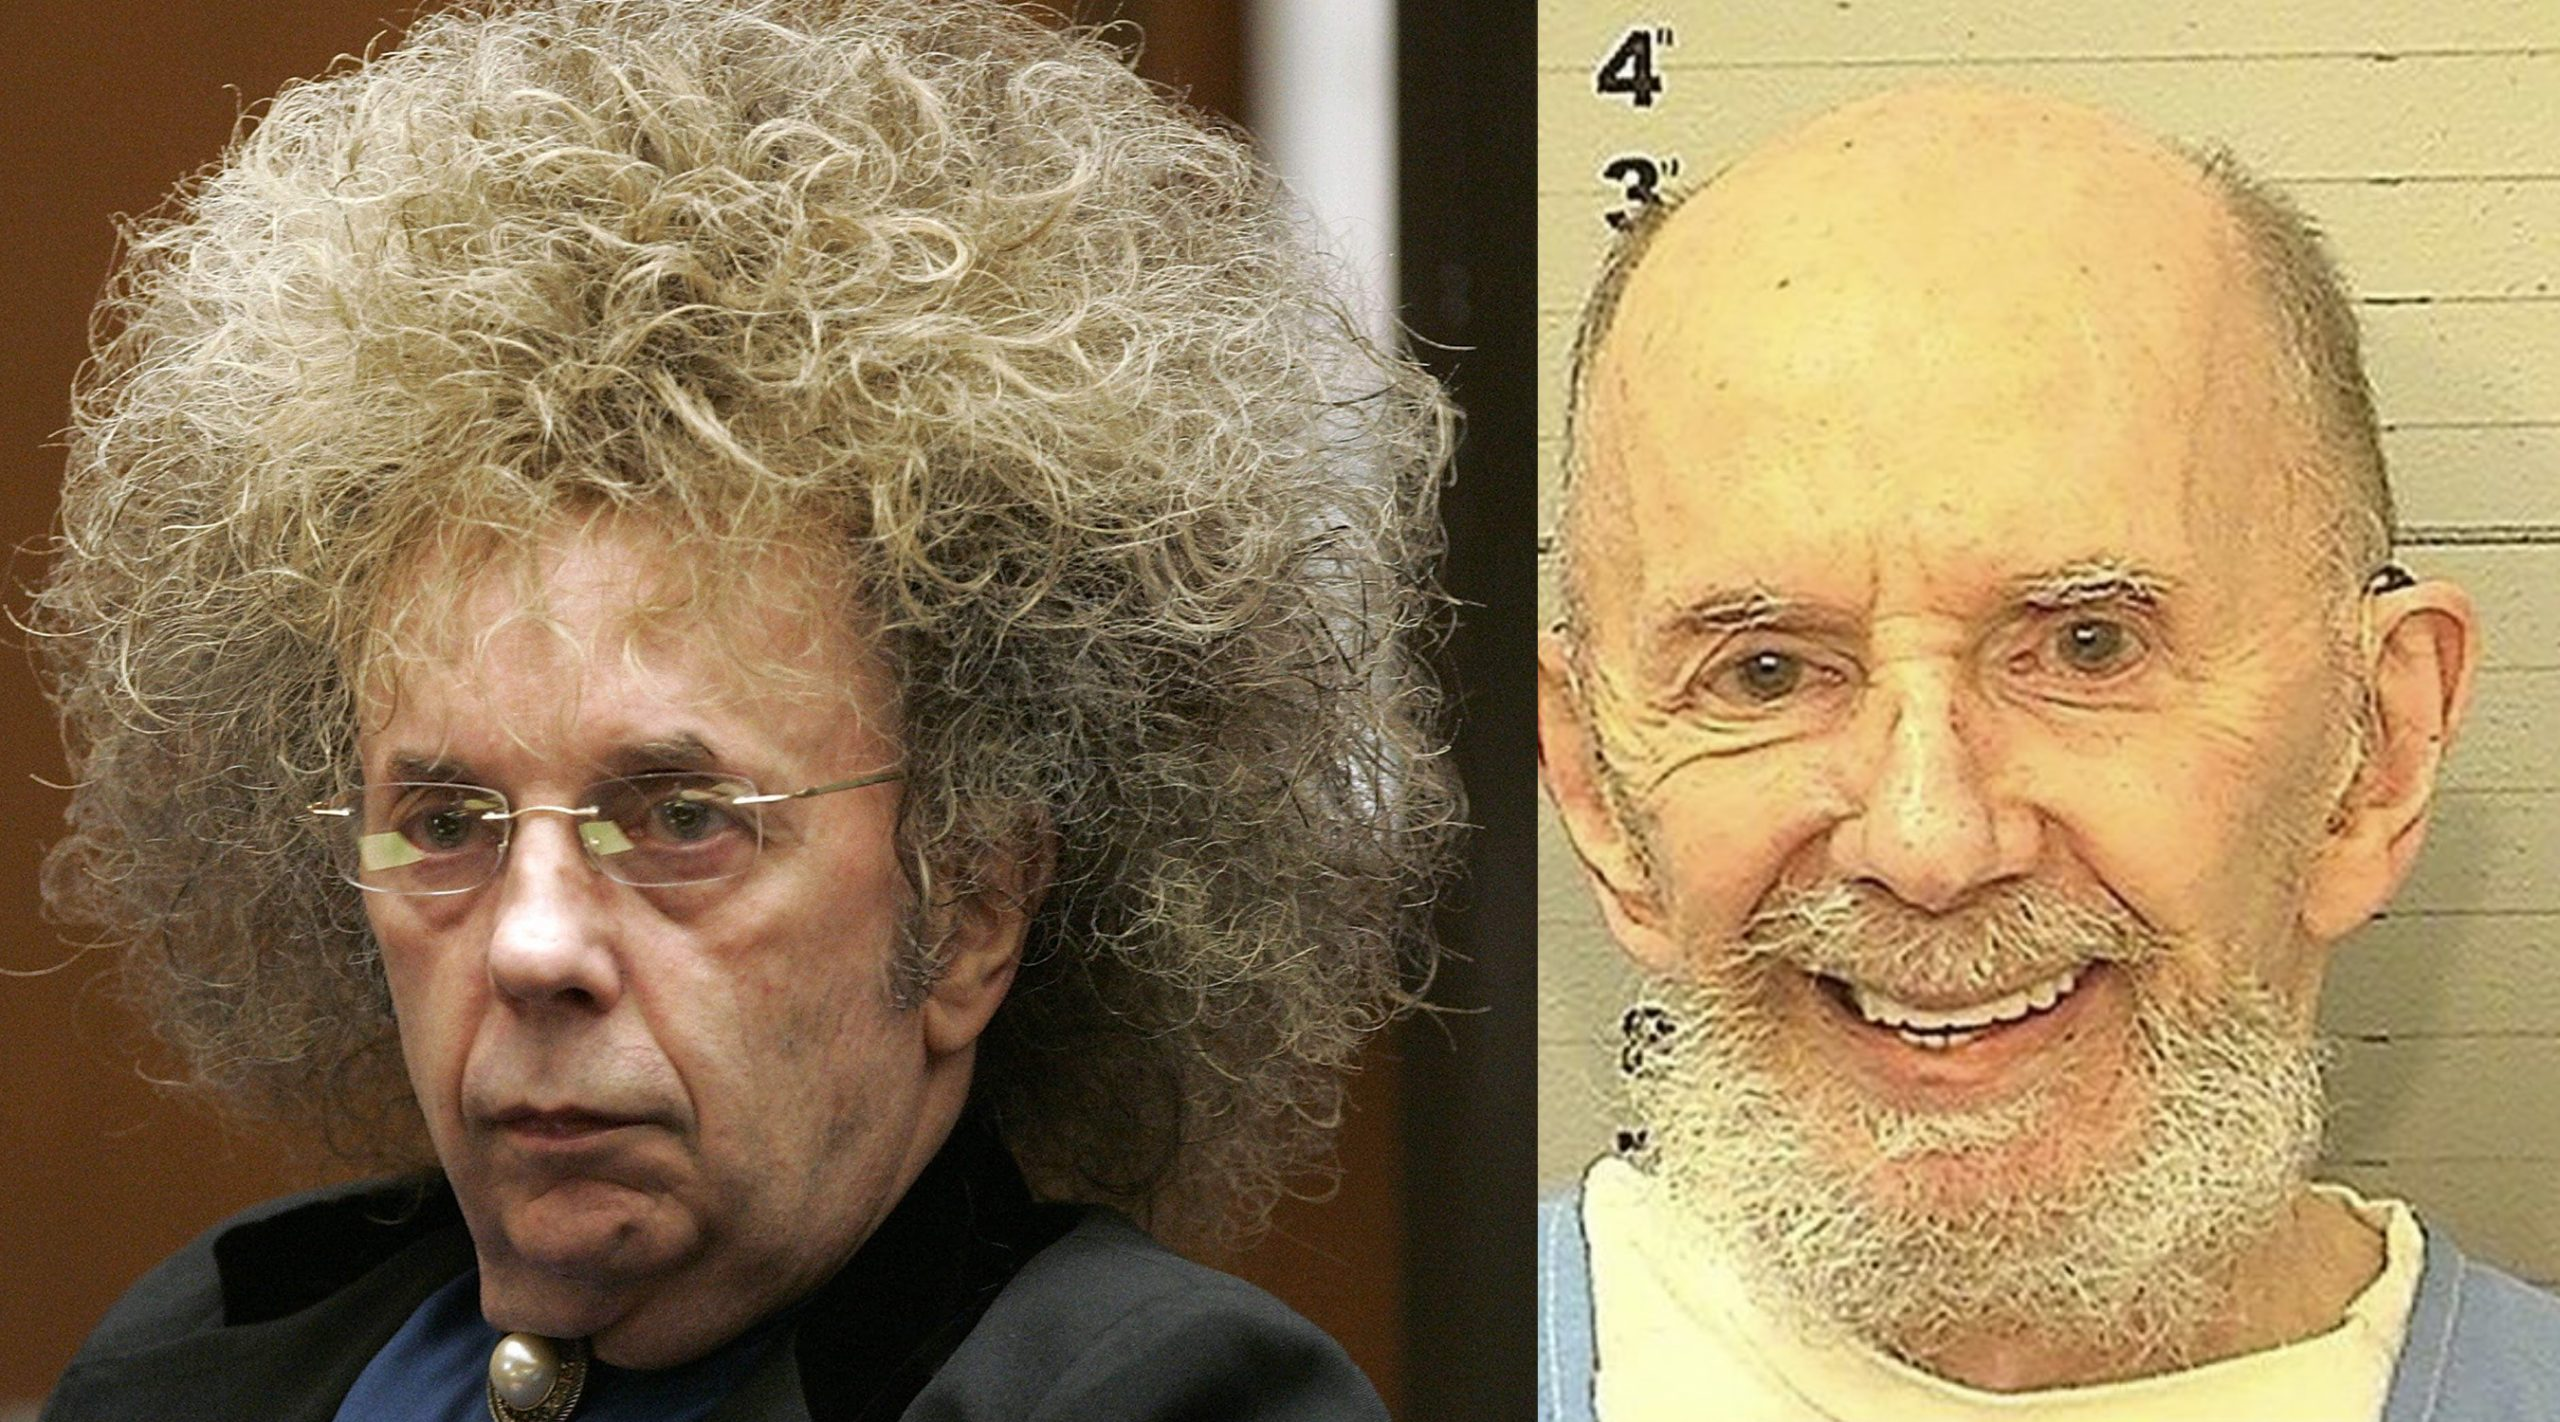 Music producer turned convicted murderer, Phil Spector, dies